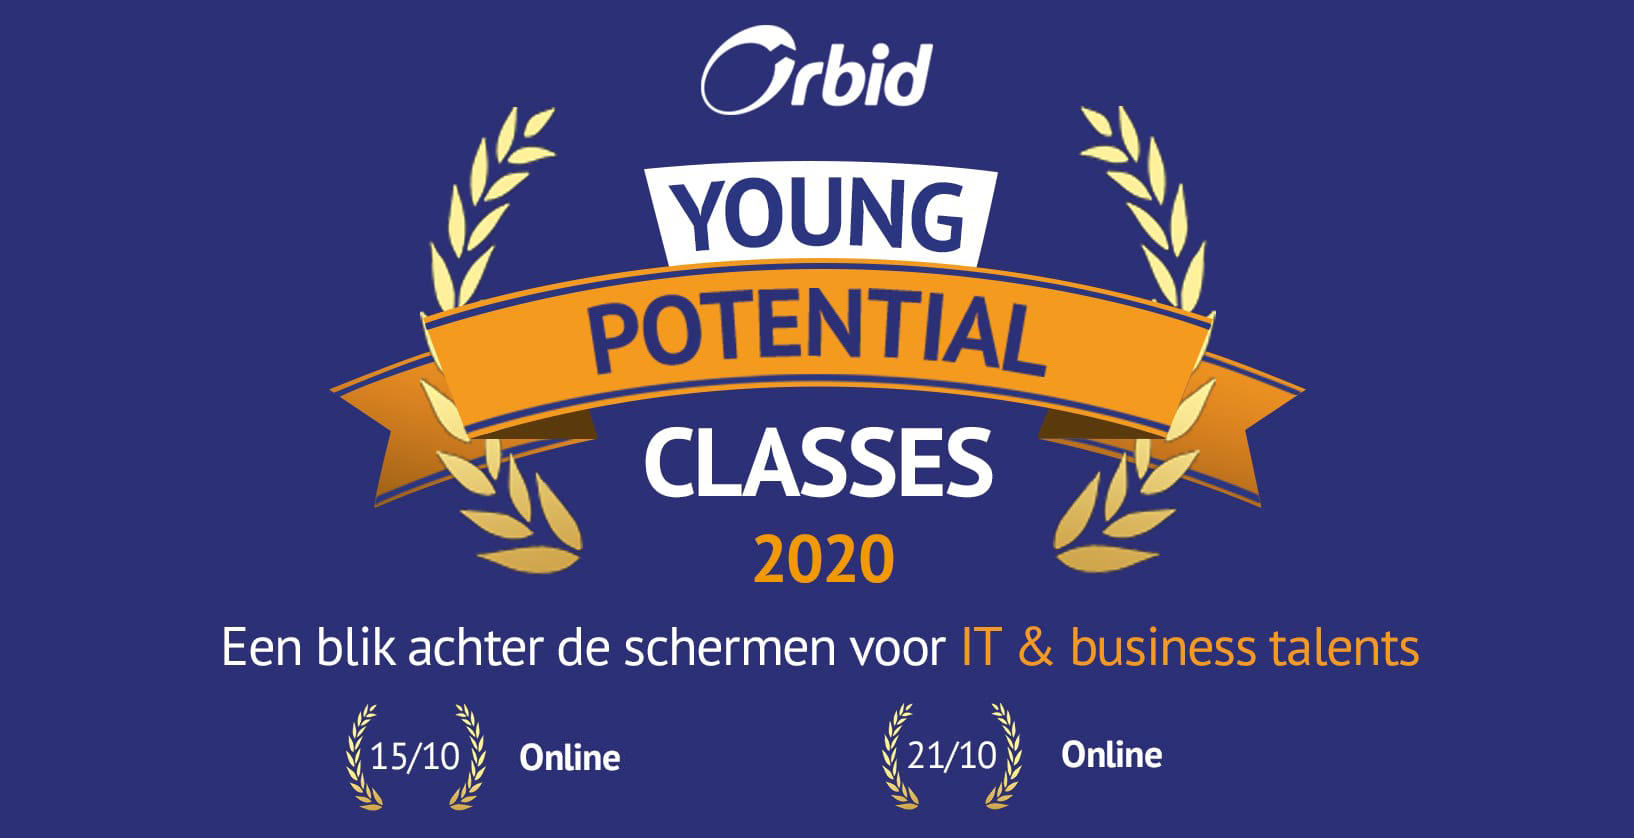 Young Potential Classes Orbid